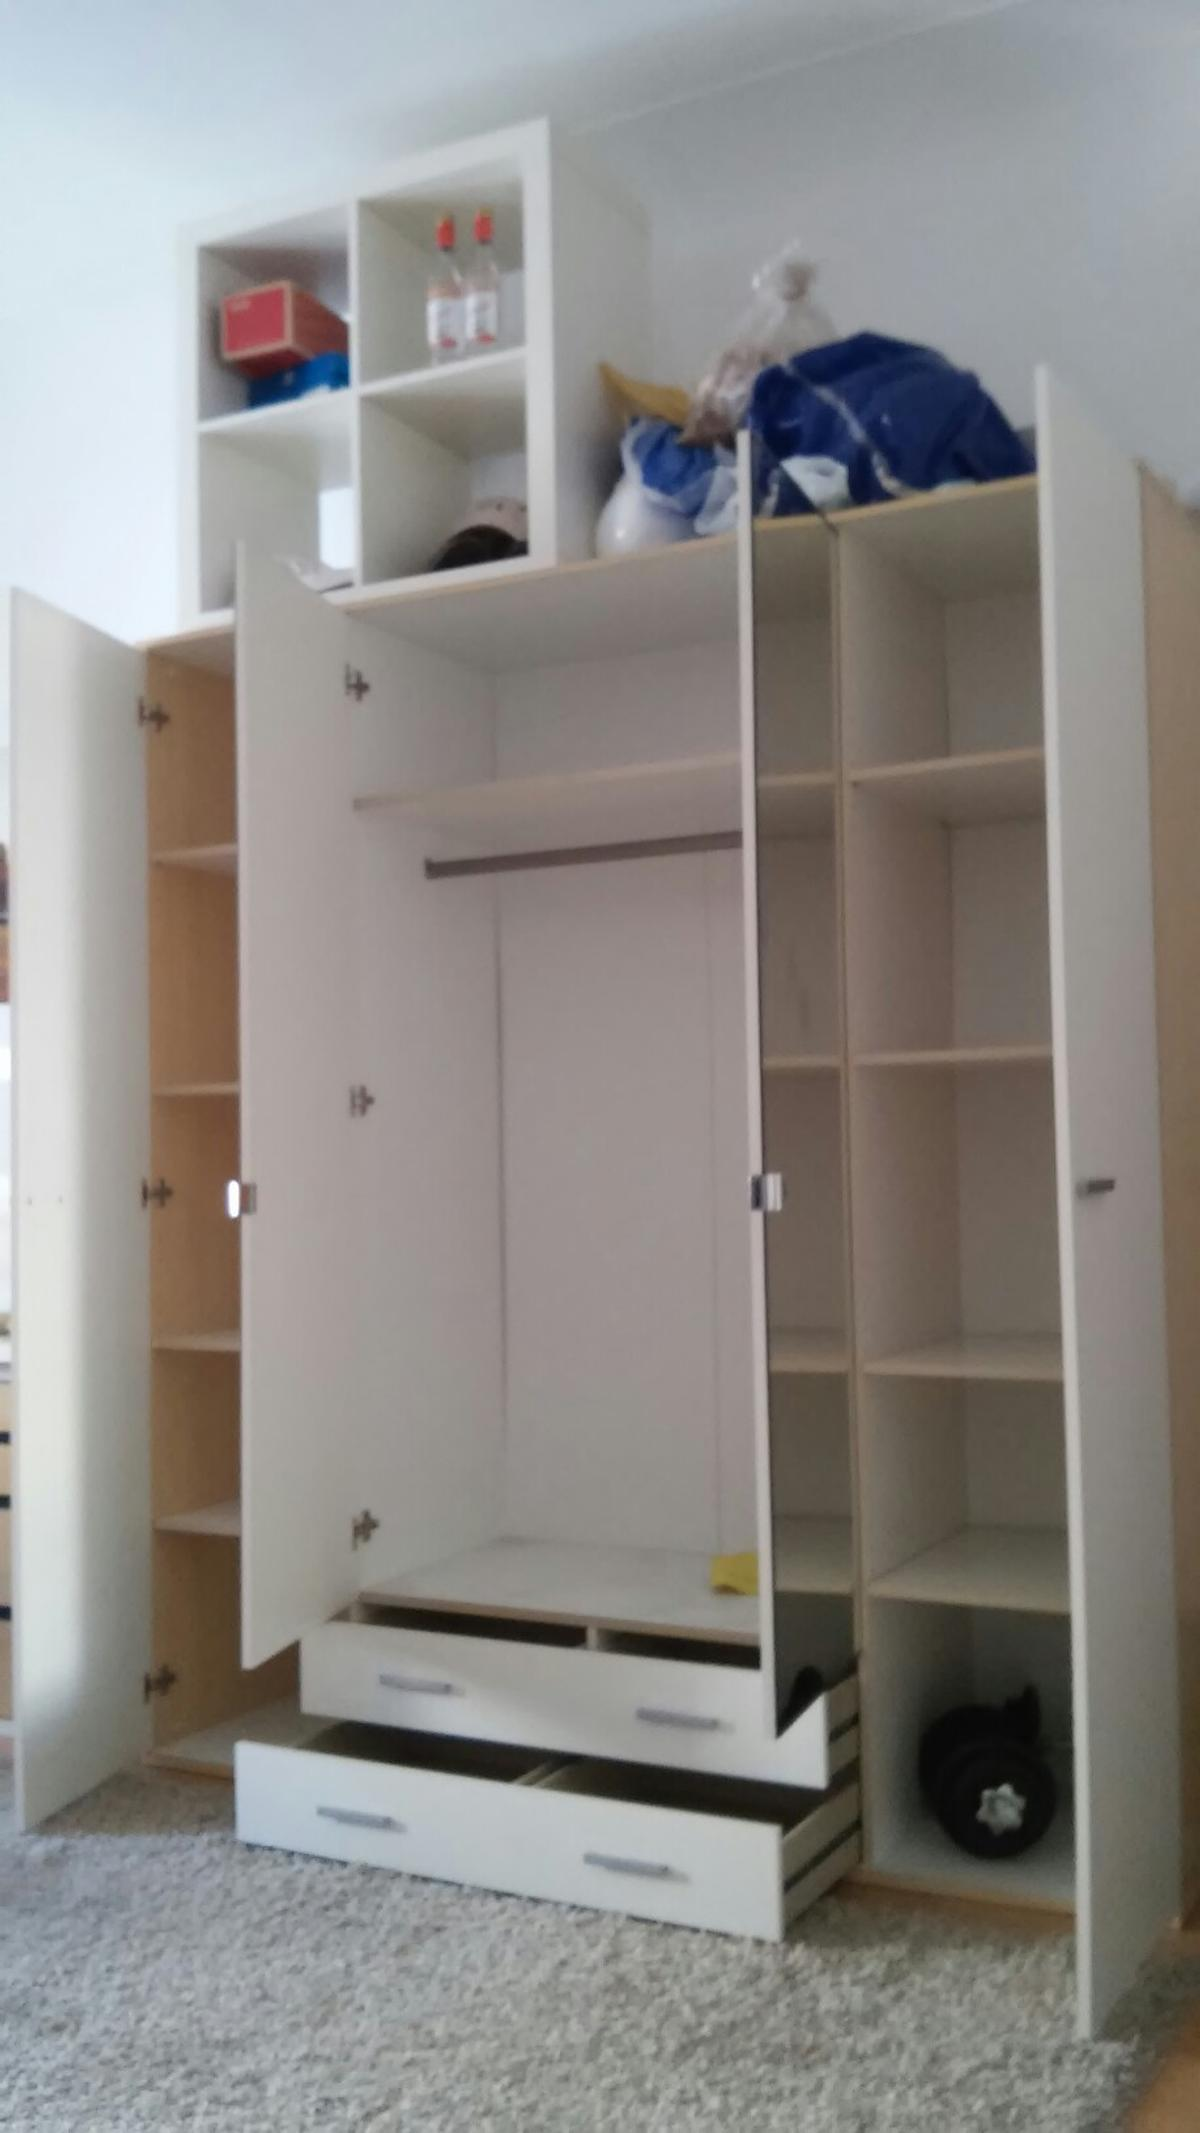 Kleiderschrank Ikea Oleby In 70178 Stuttgart For 150 00 For Sale